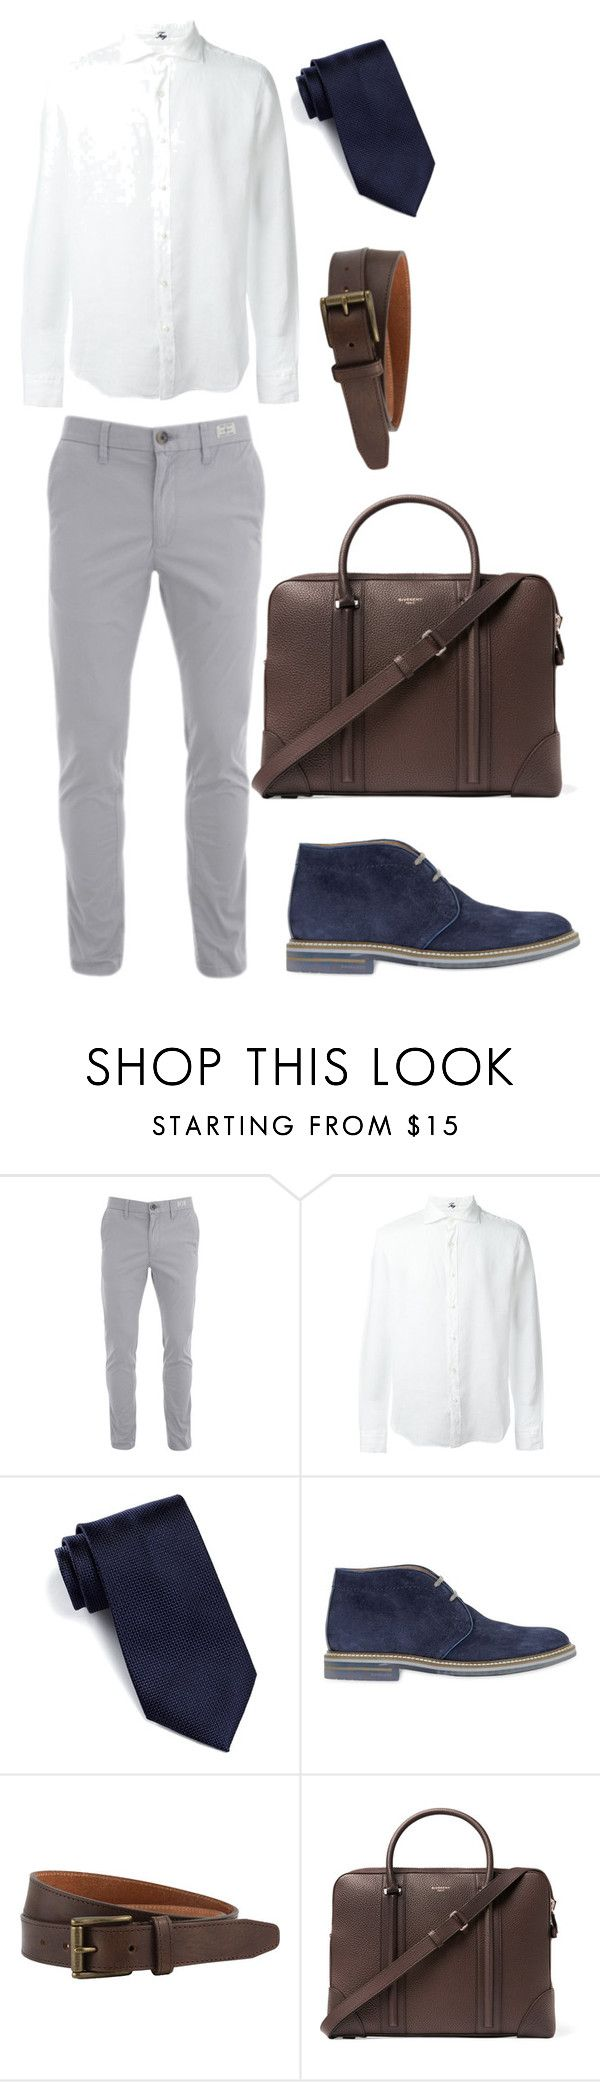 """Look 3- WILSONS"" by kirravanblanken on Polyvore featuring FAY, Nordstrom Rack, Brimarts, The British Belt Company, Givenchy, men's fashion and menswear"